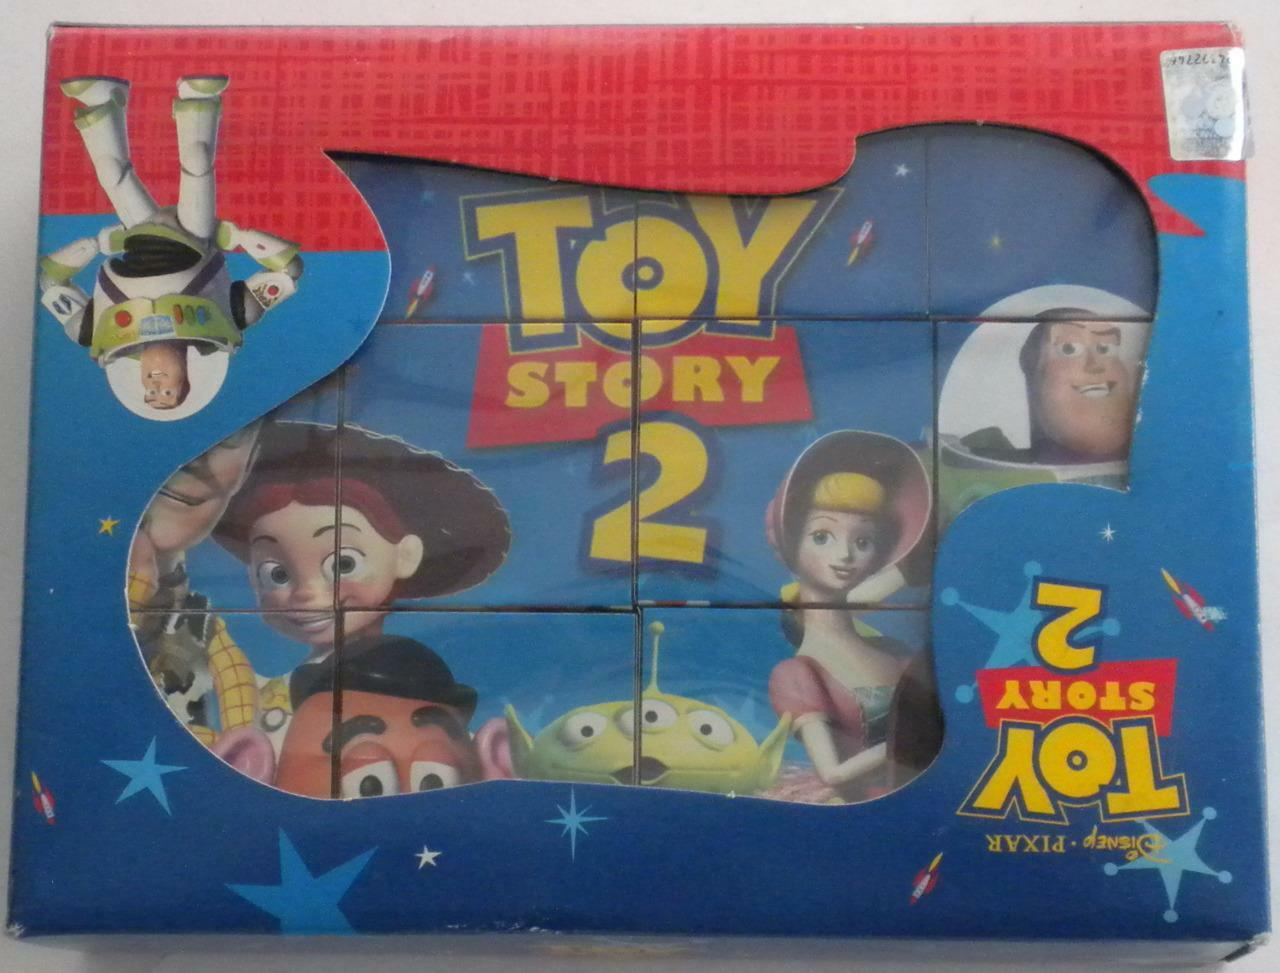 Nuovo Toy Story 2 Immagine EleSieti Costitutivi Hong Kong